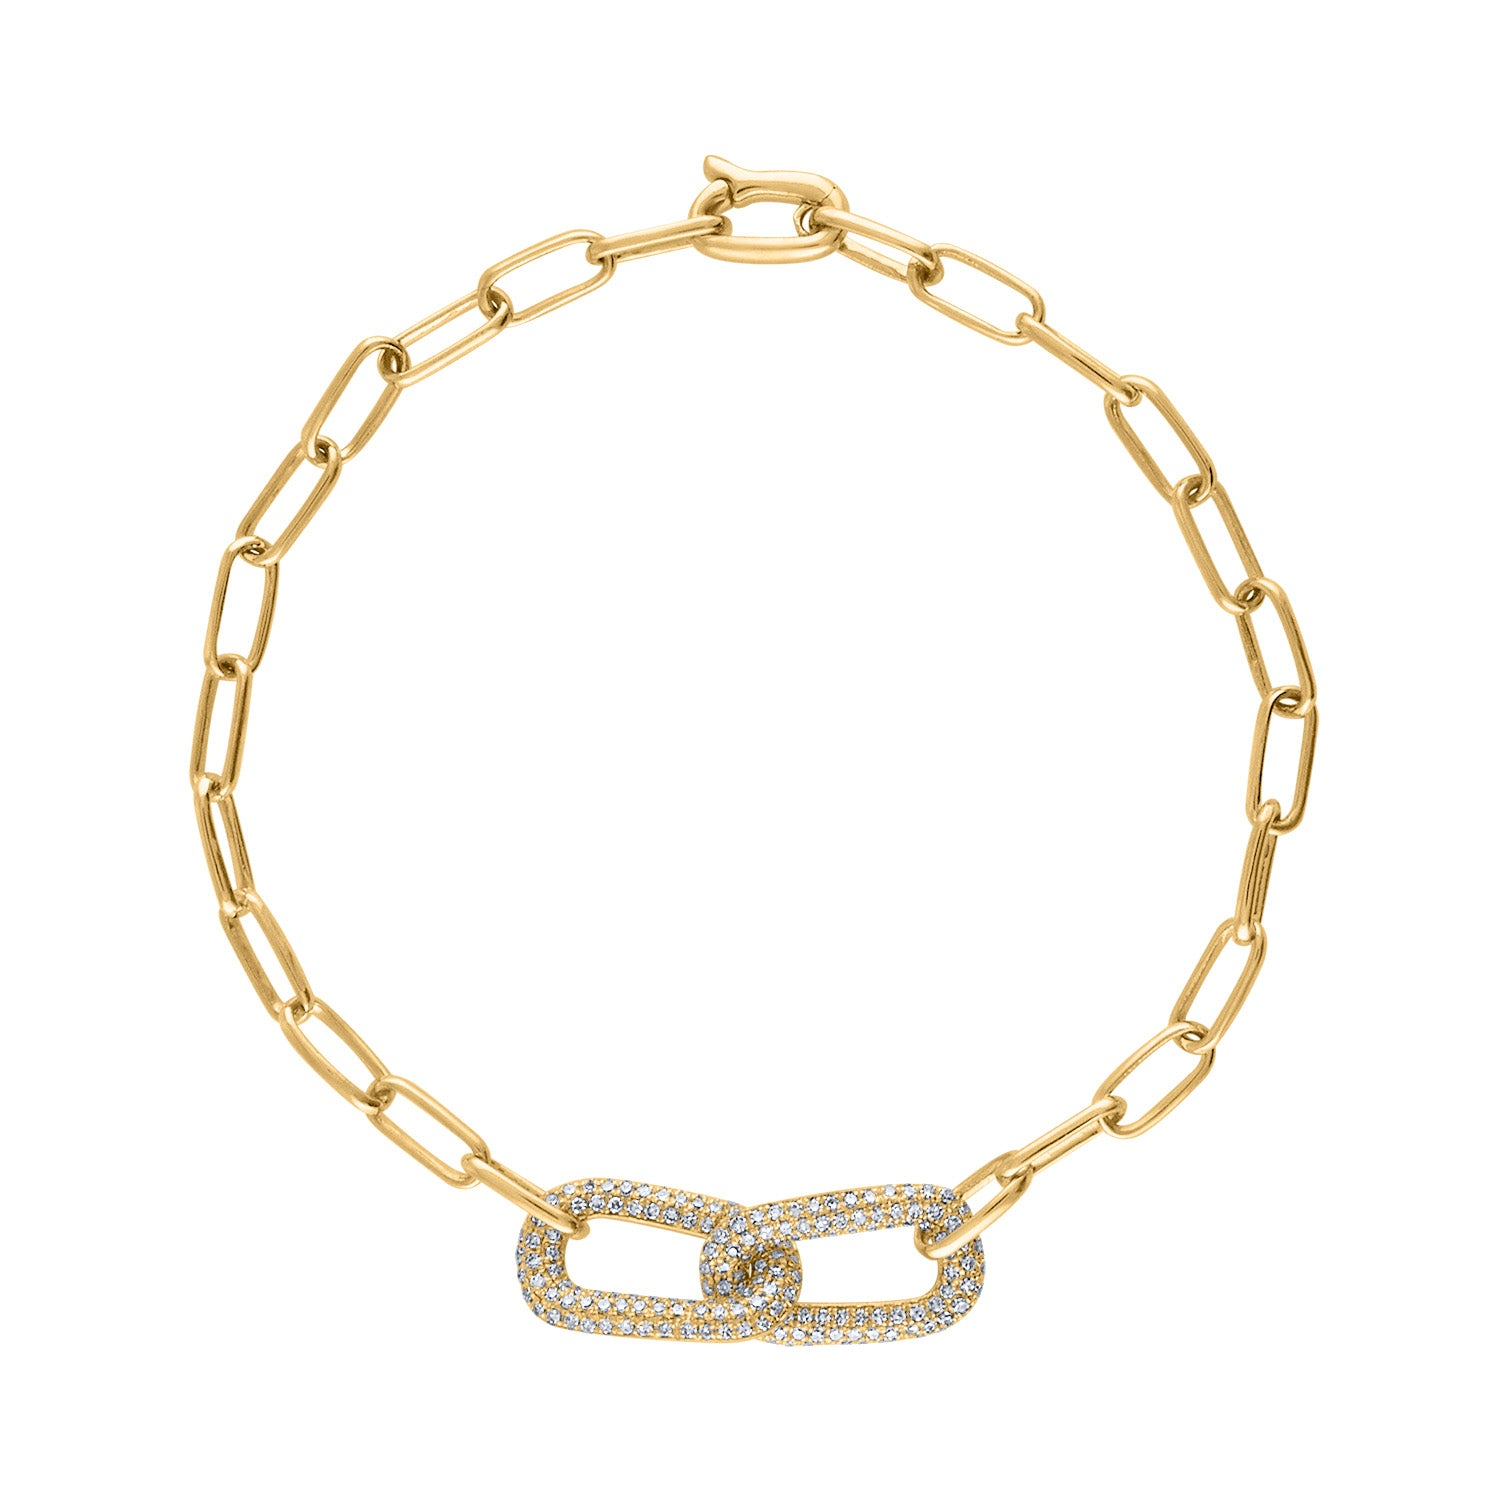 14KT GOLD DOUBLE PAVE DIAMOND LINK BRACELET